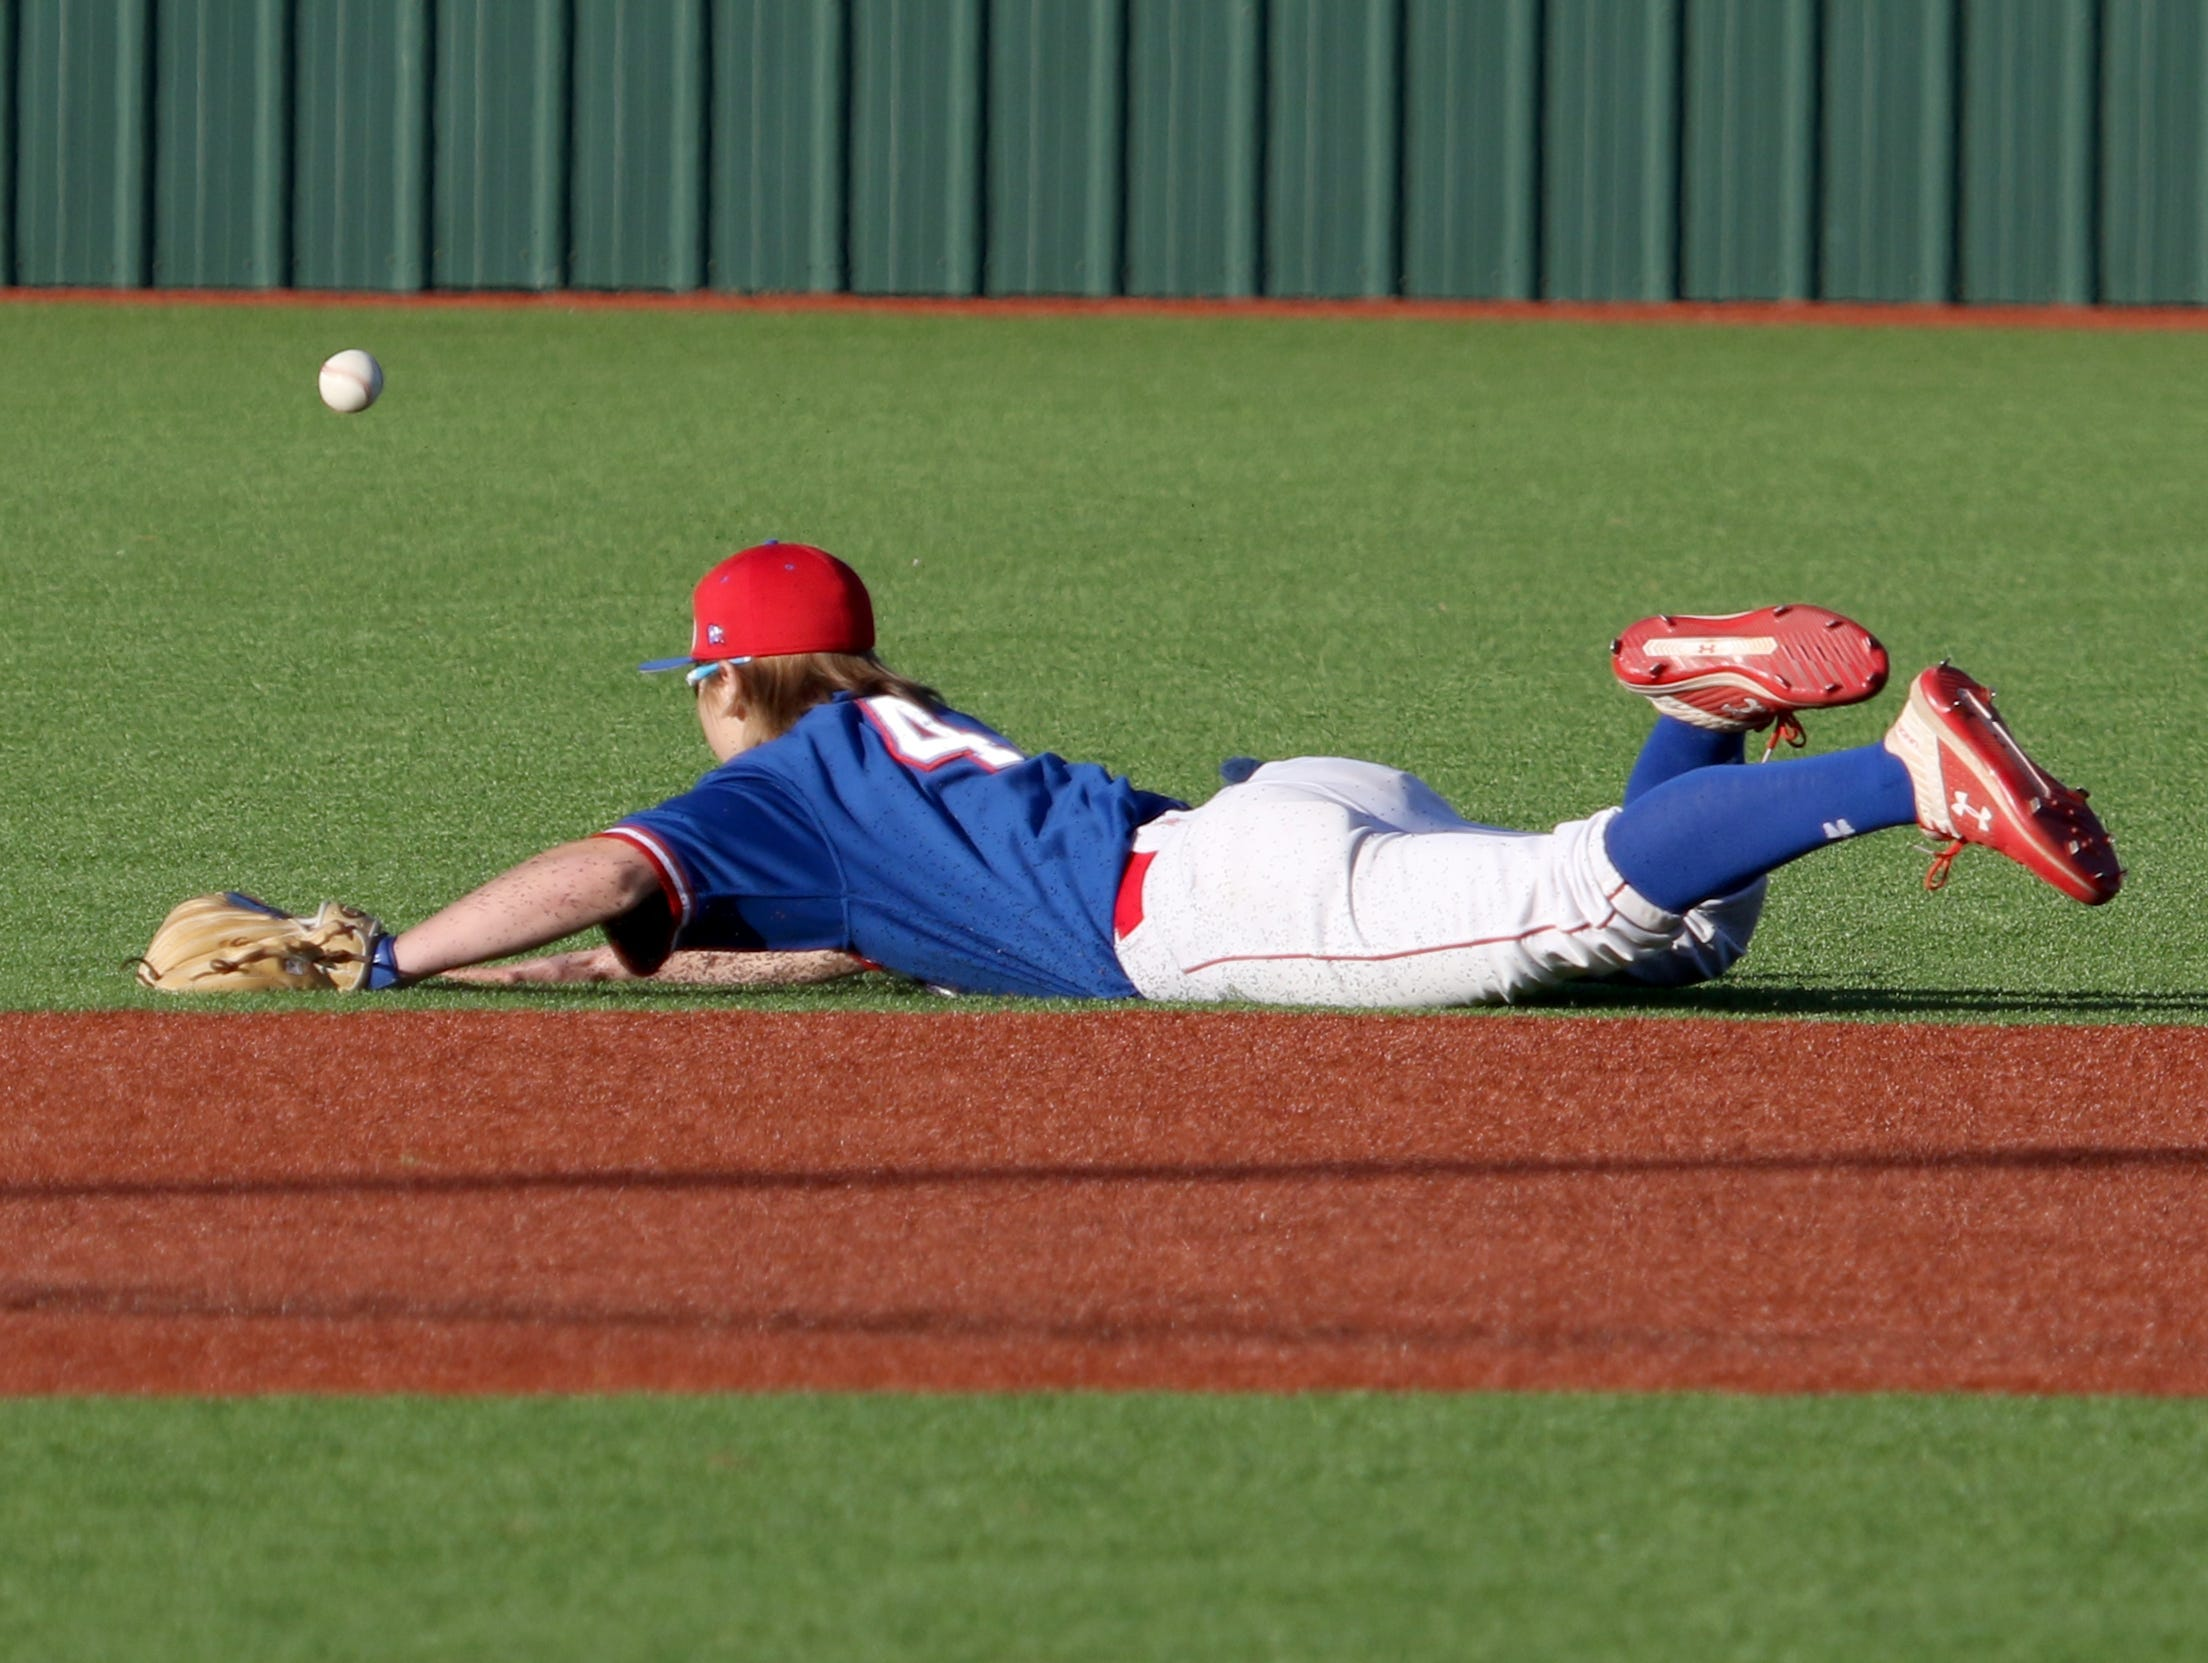 Abilene Cooper's Brody Stanford watches as the ball goes into the outfield in the game against Rider Tuesday, March 5, 2019, at Hoskins Field.